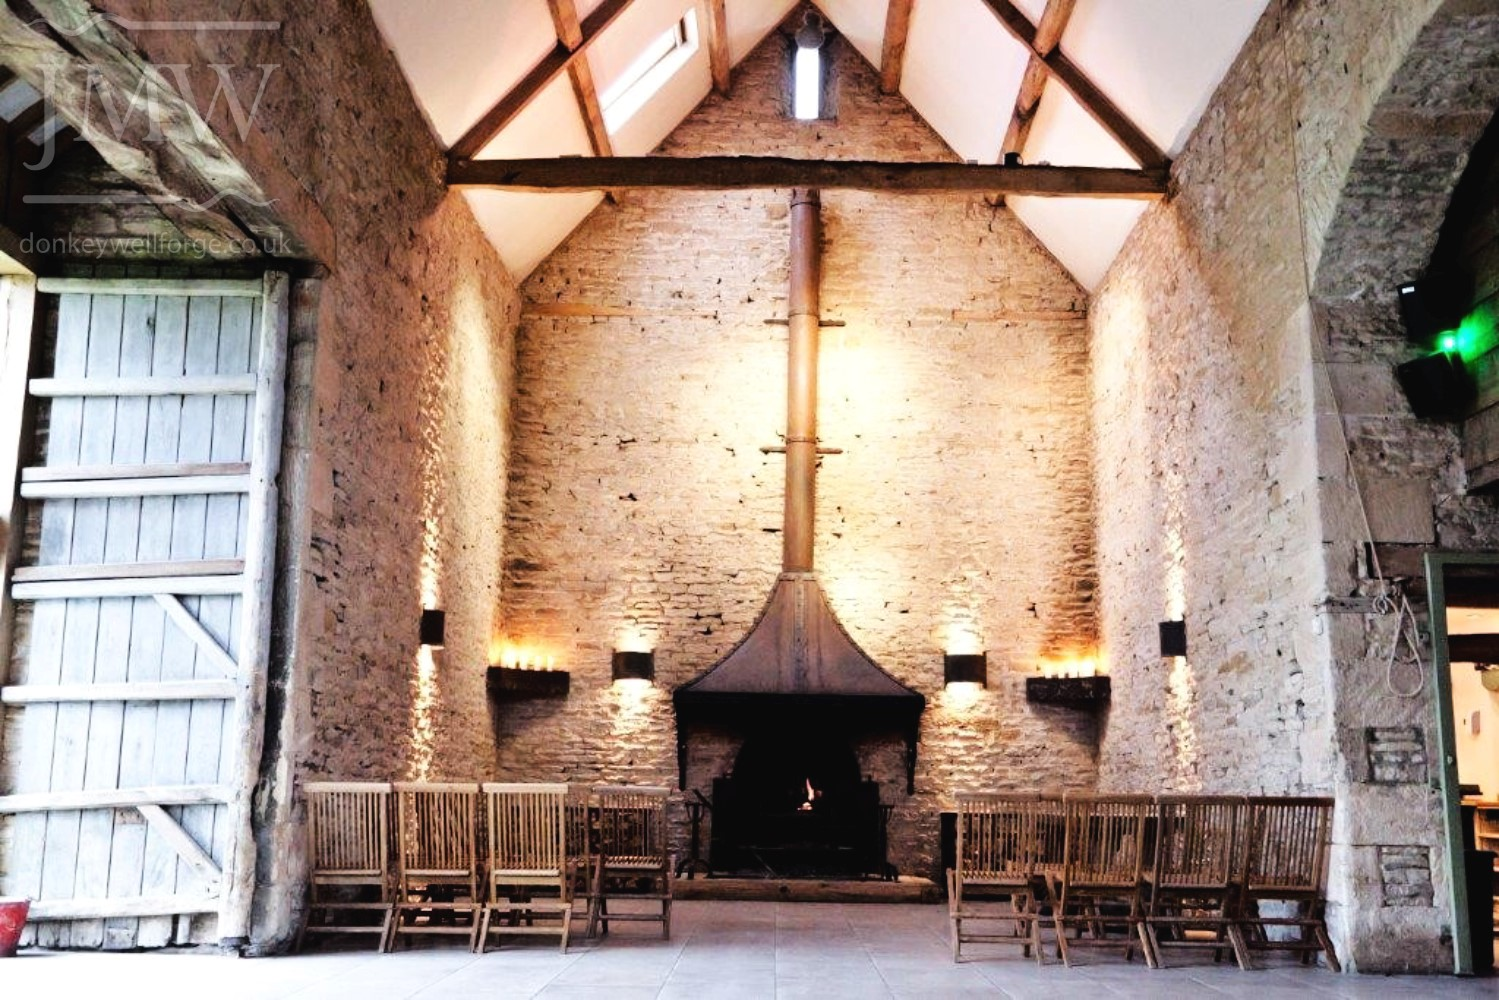 firehood-chimney-iron-wedding-venue-cotswolds-barn-donkeywell-forge-riveted